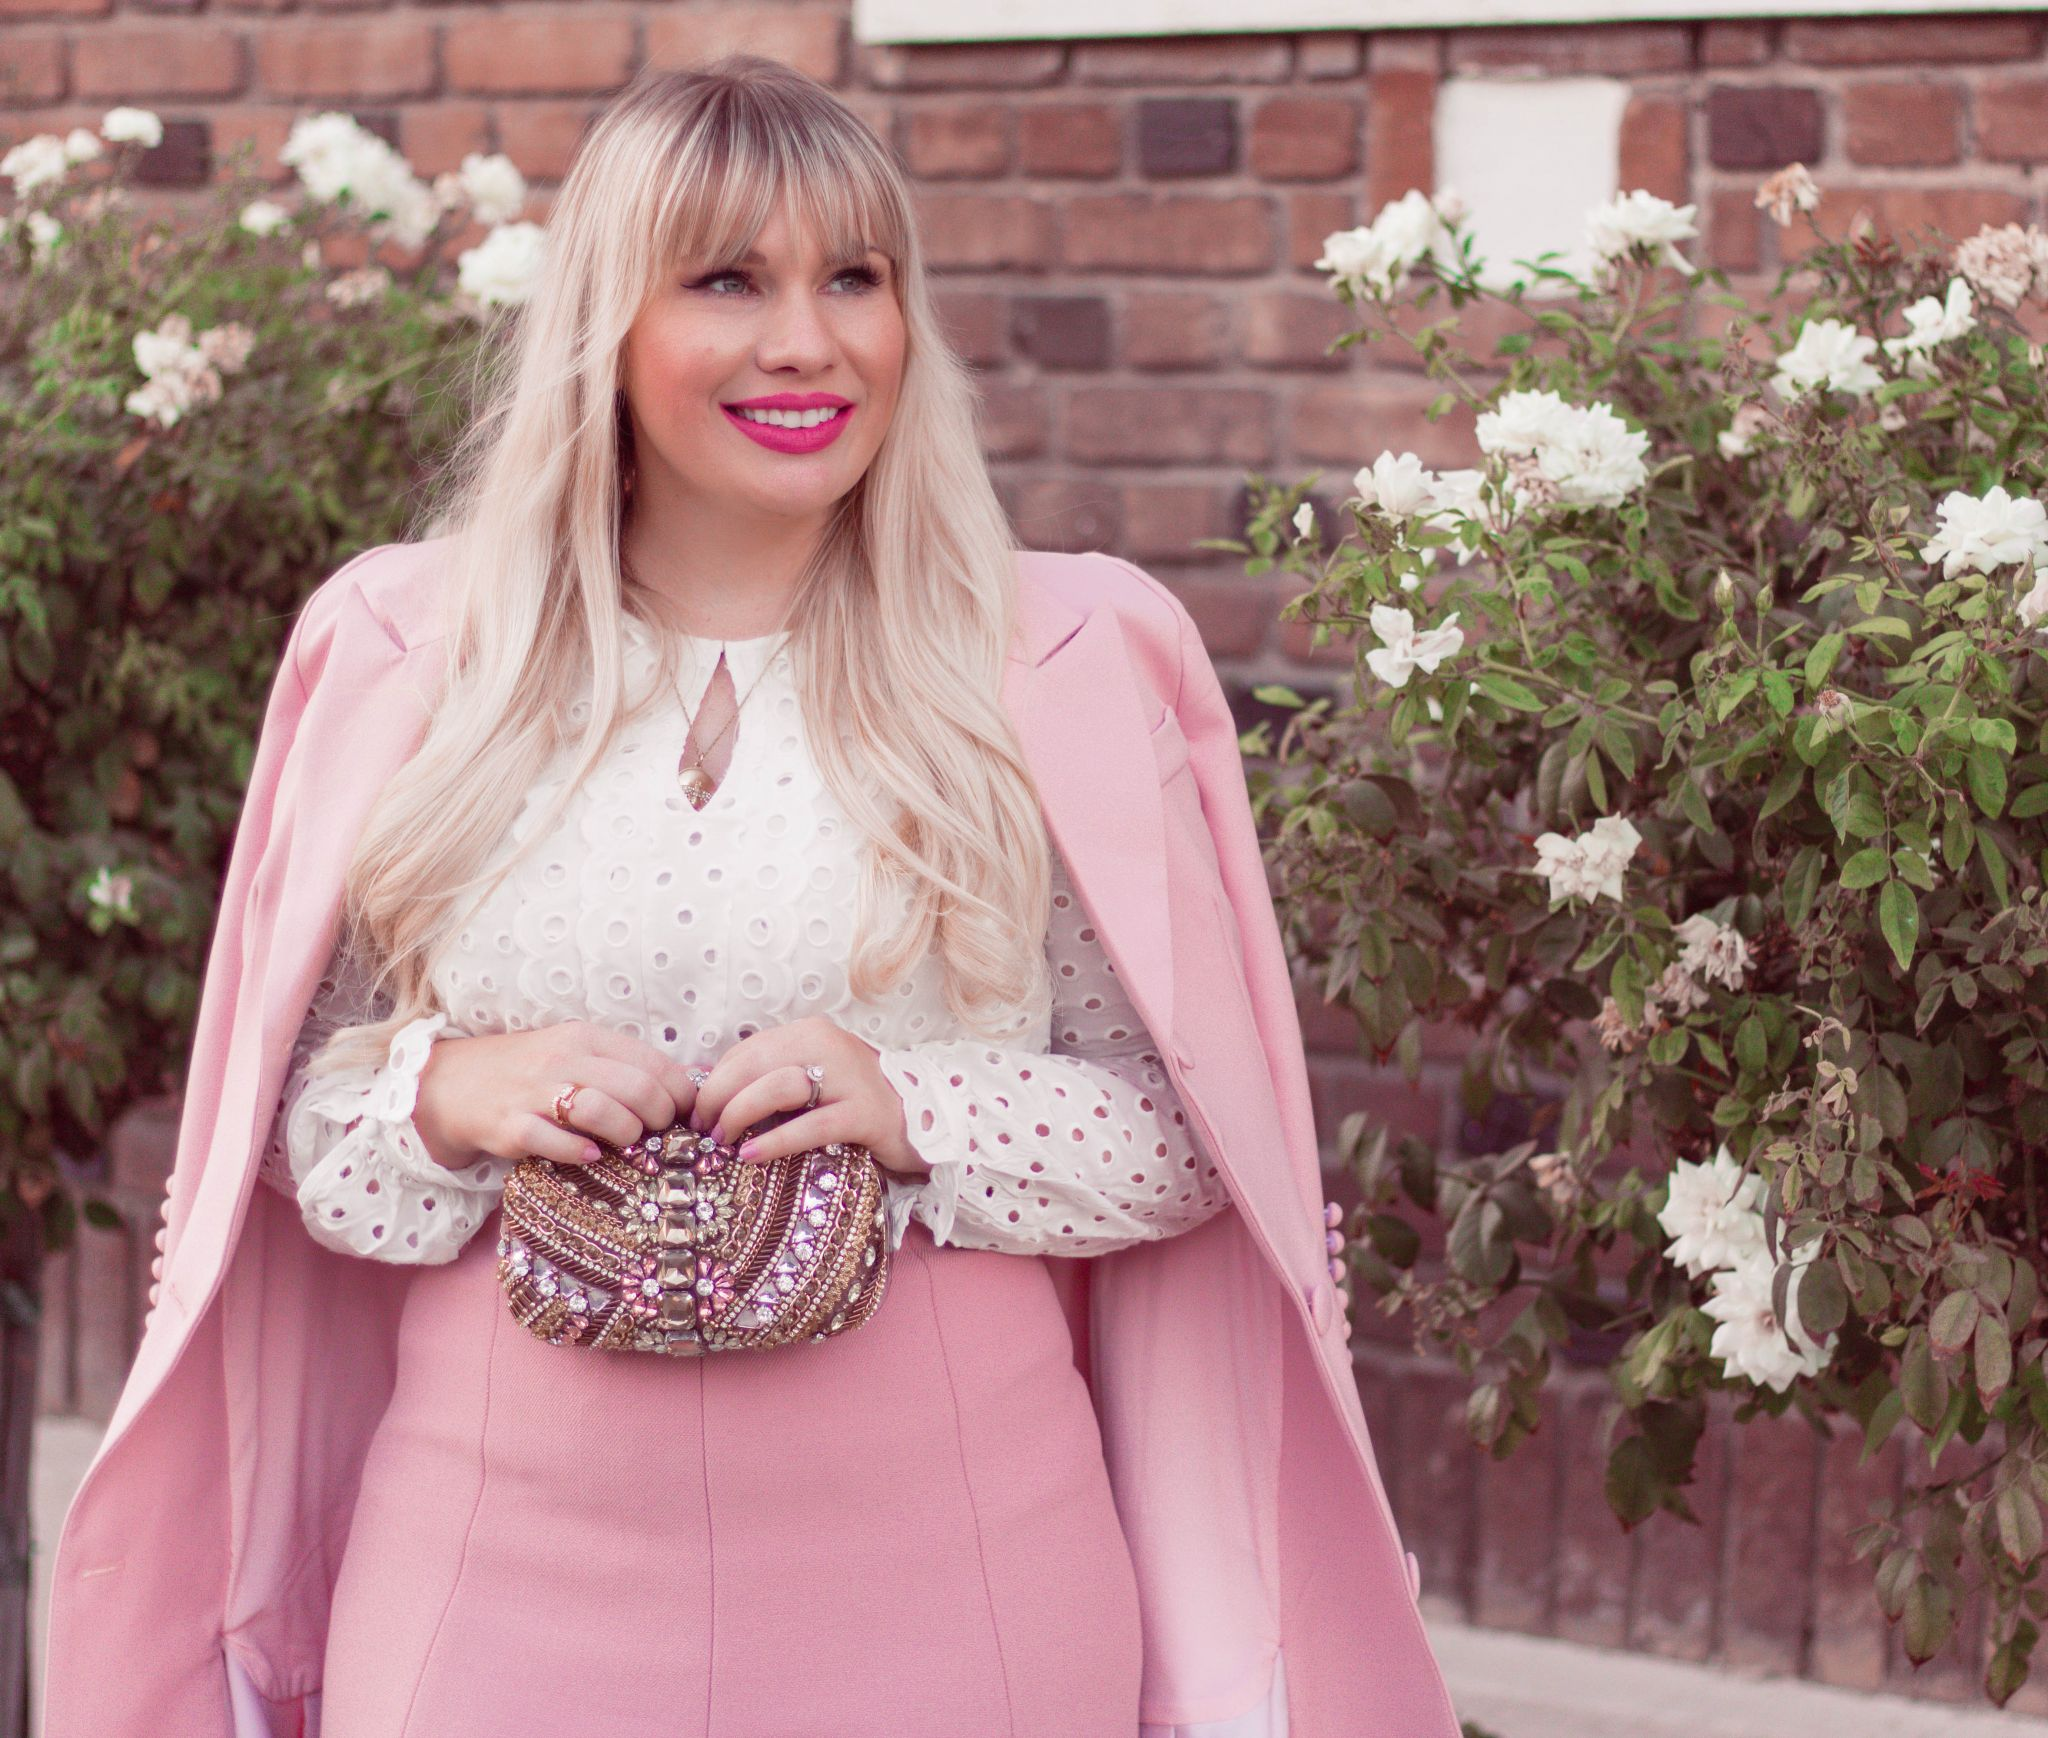 Fashion blogger Elizabeth Hugen of Lizzie in Lace shares 5 tips to make a pink outfit look sophisticated along with this feminine pink outfit idea with jeweled clutch